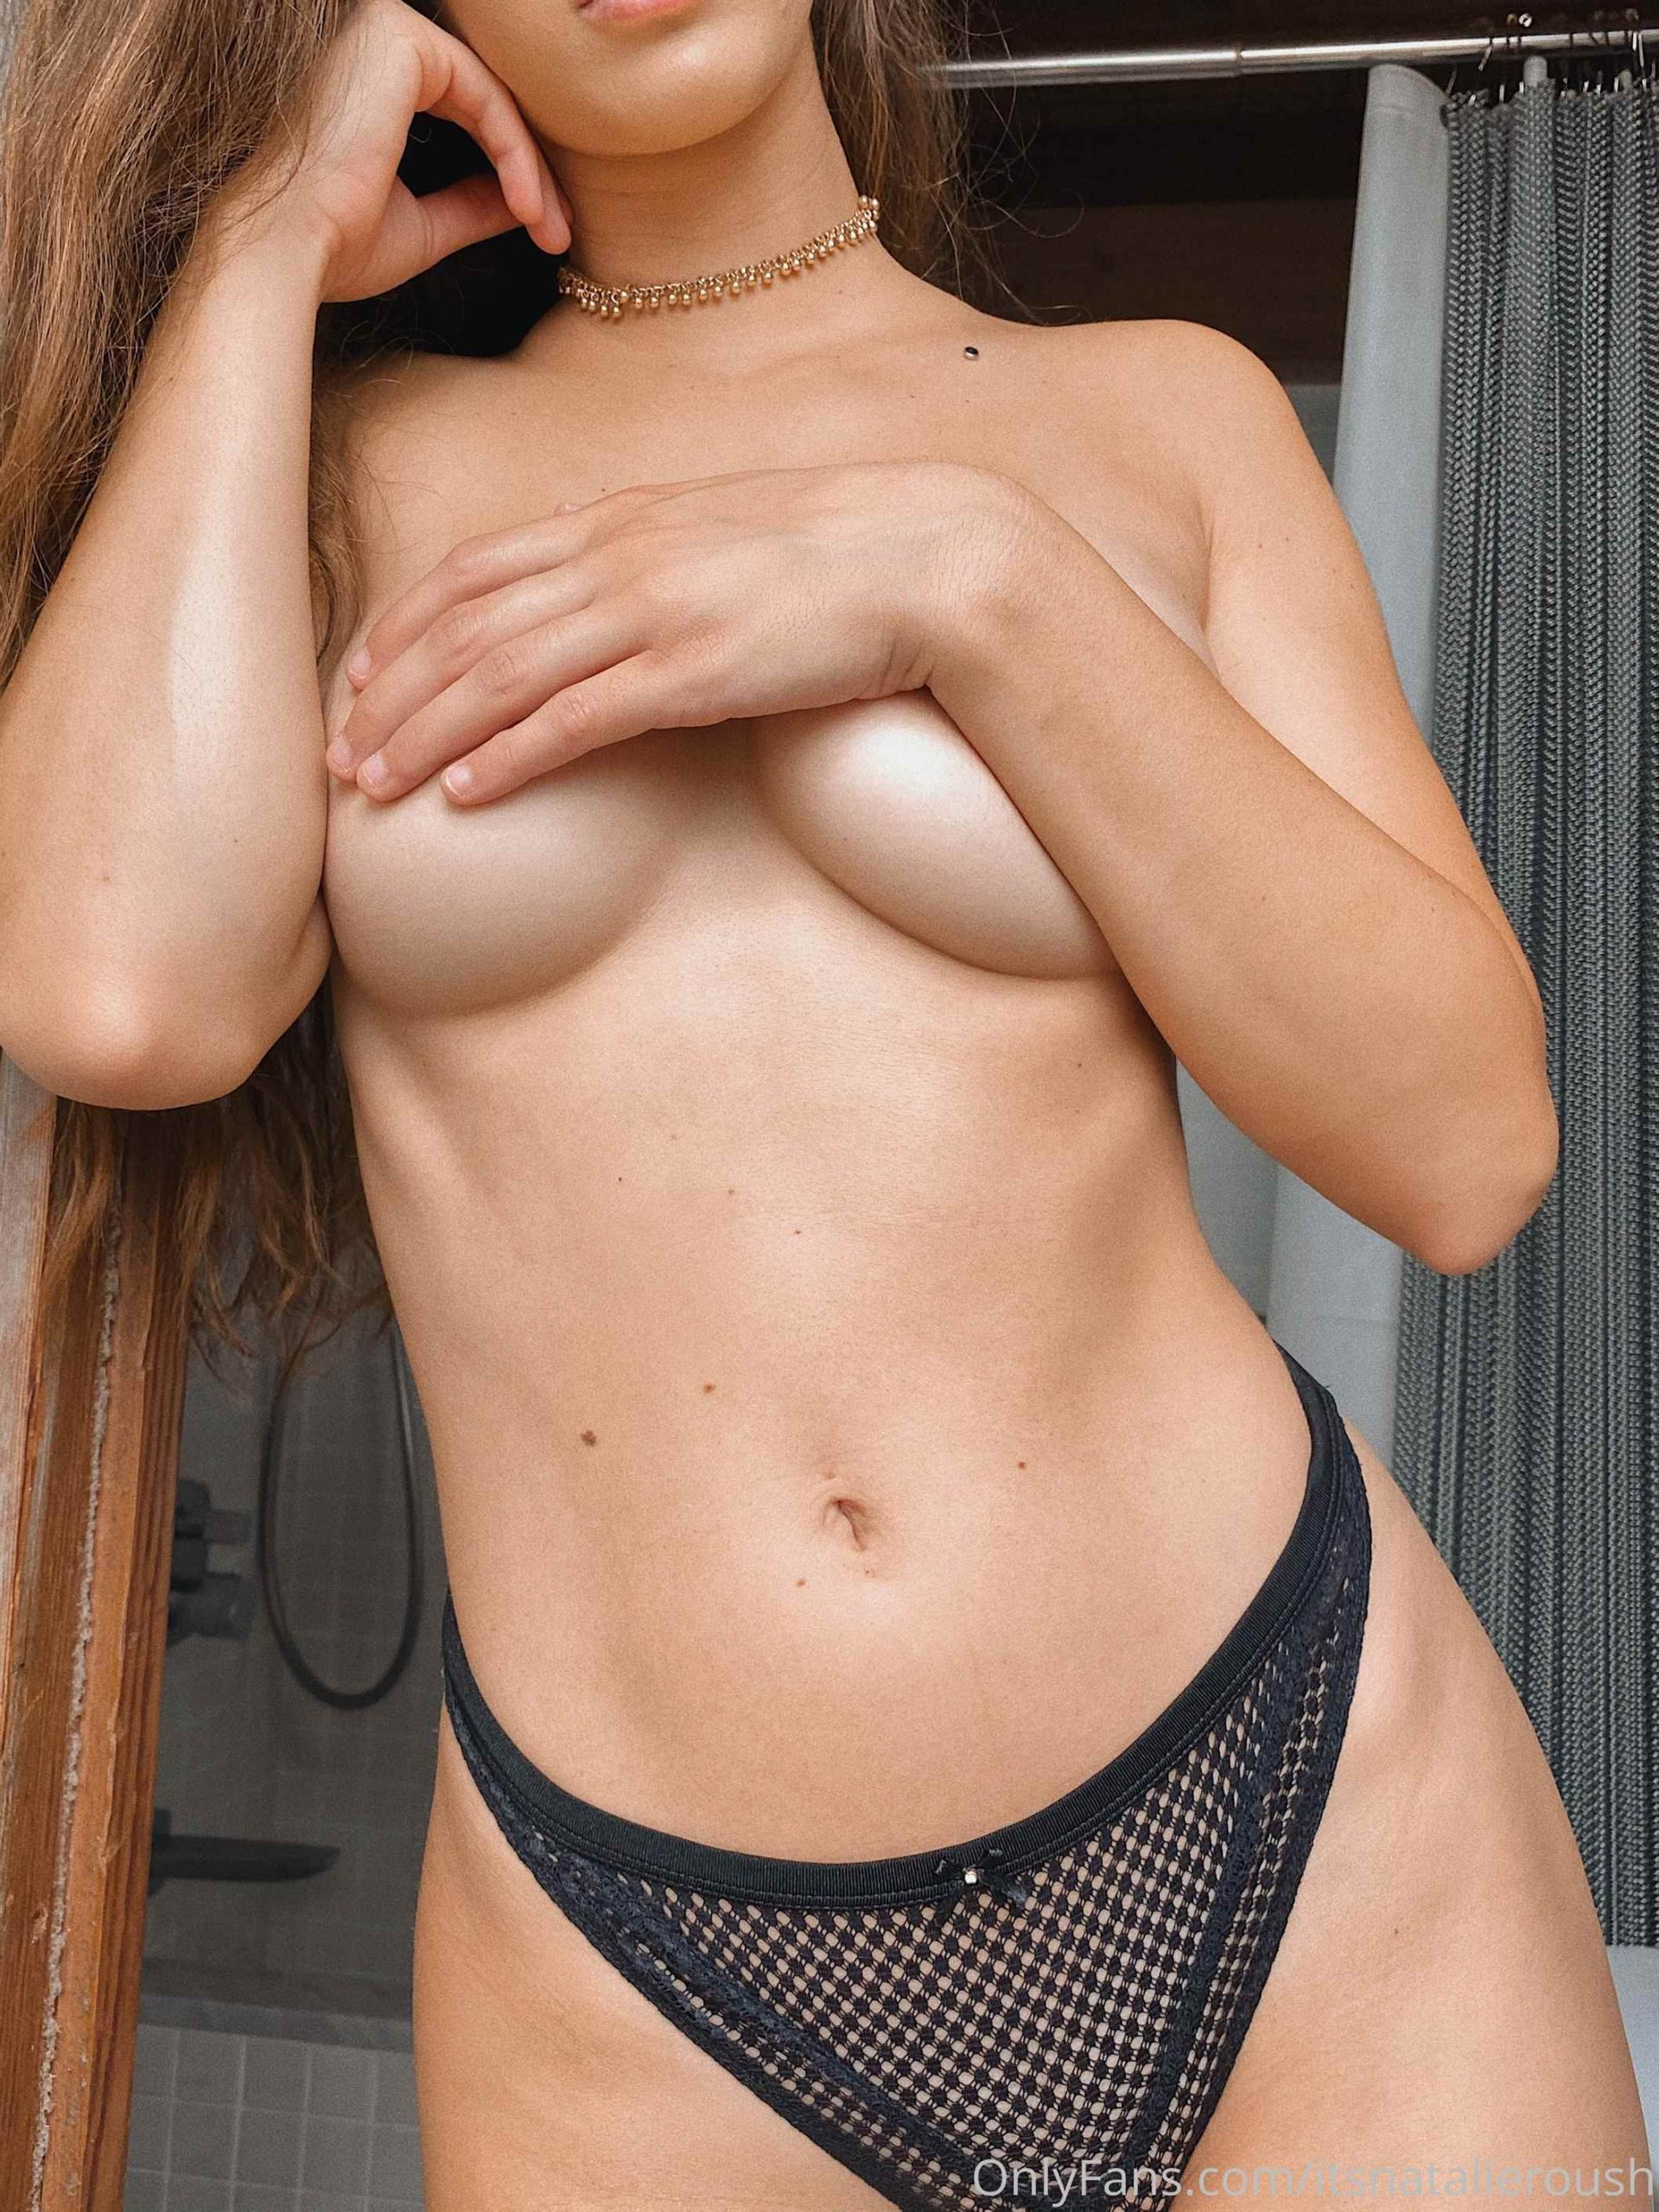 Natalie Roush Nude Leaked Onlyfans Photos 0058